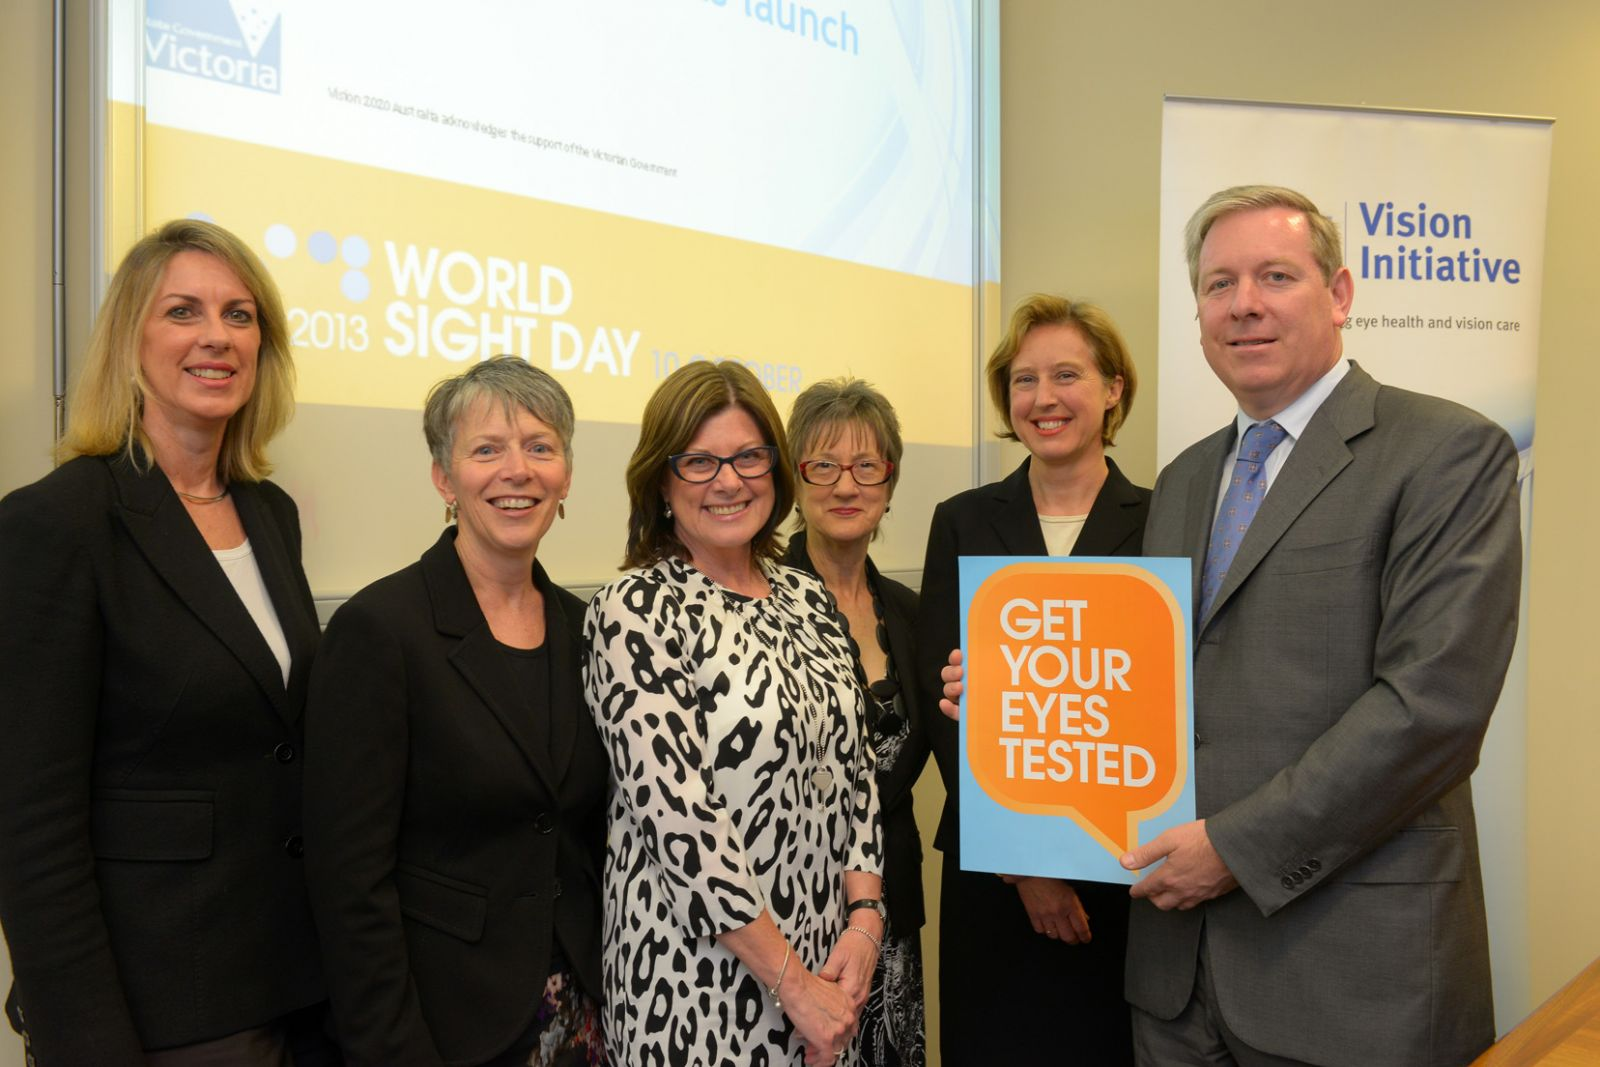 From left to right: Georgie Crozier MLC (Victorian Parliamentary Secretary for Health), Terri Smith (CEO, Optometrists Association Australia – Victoria), Jennifer Gersbeck (CEO, Vision 2020 Australia), Helen Threlfall (Deputy CEO, General Practice Victoria), Maureen O'Keefe (CEO, Australian College of Optometry) and the Hon David Davis MLC (Victorian Minister for Health).